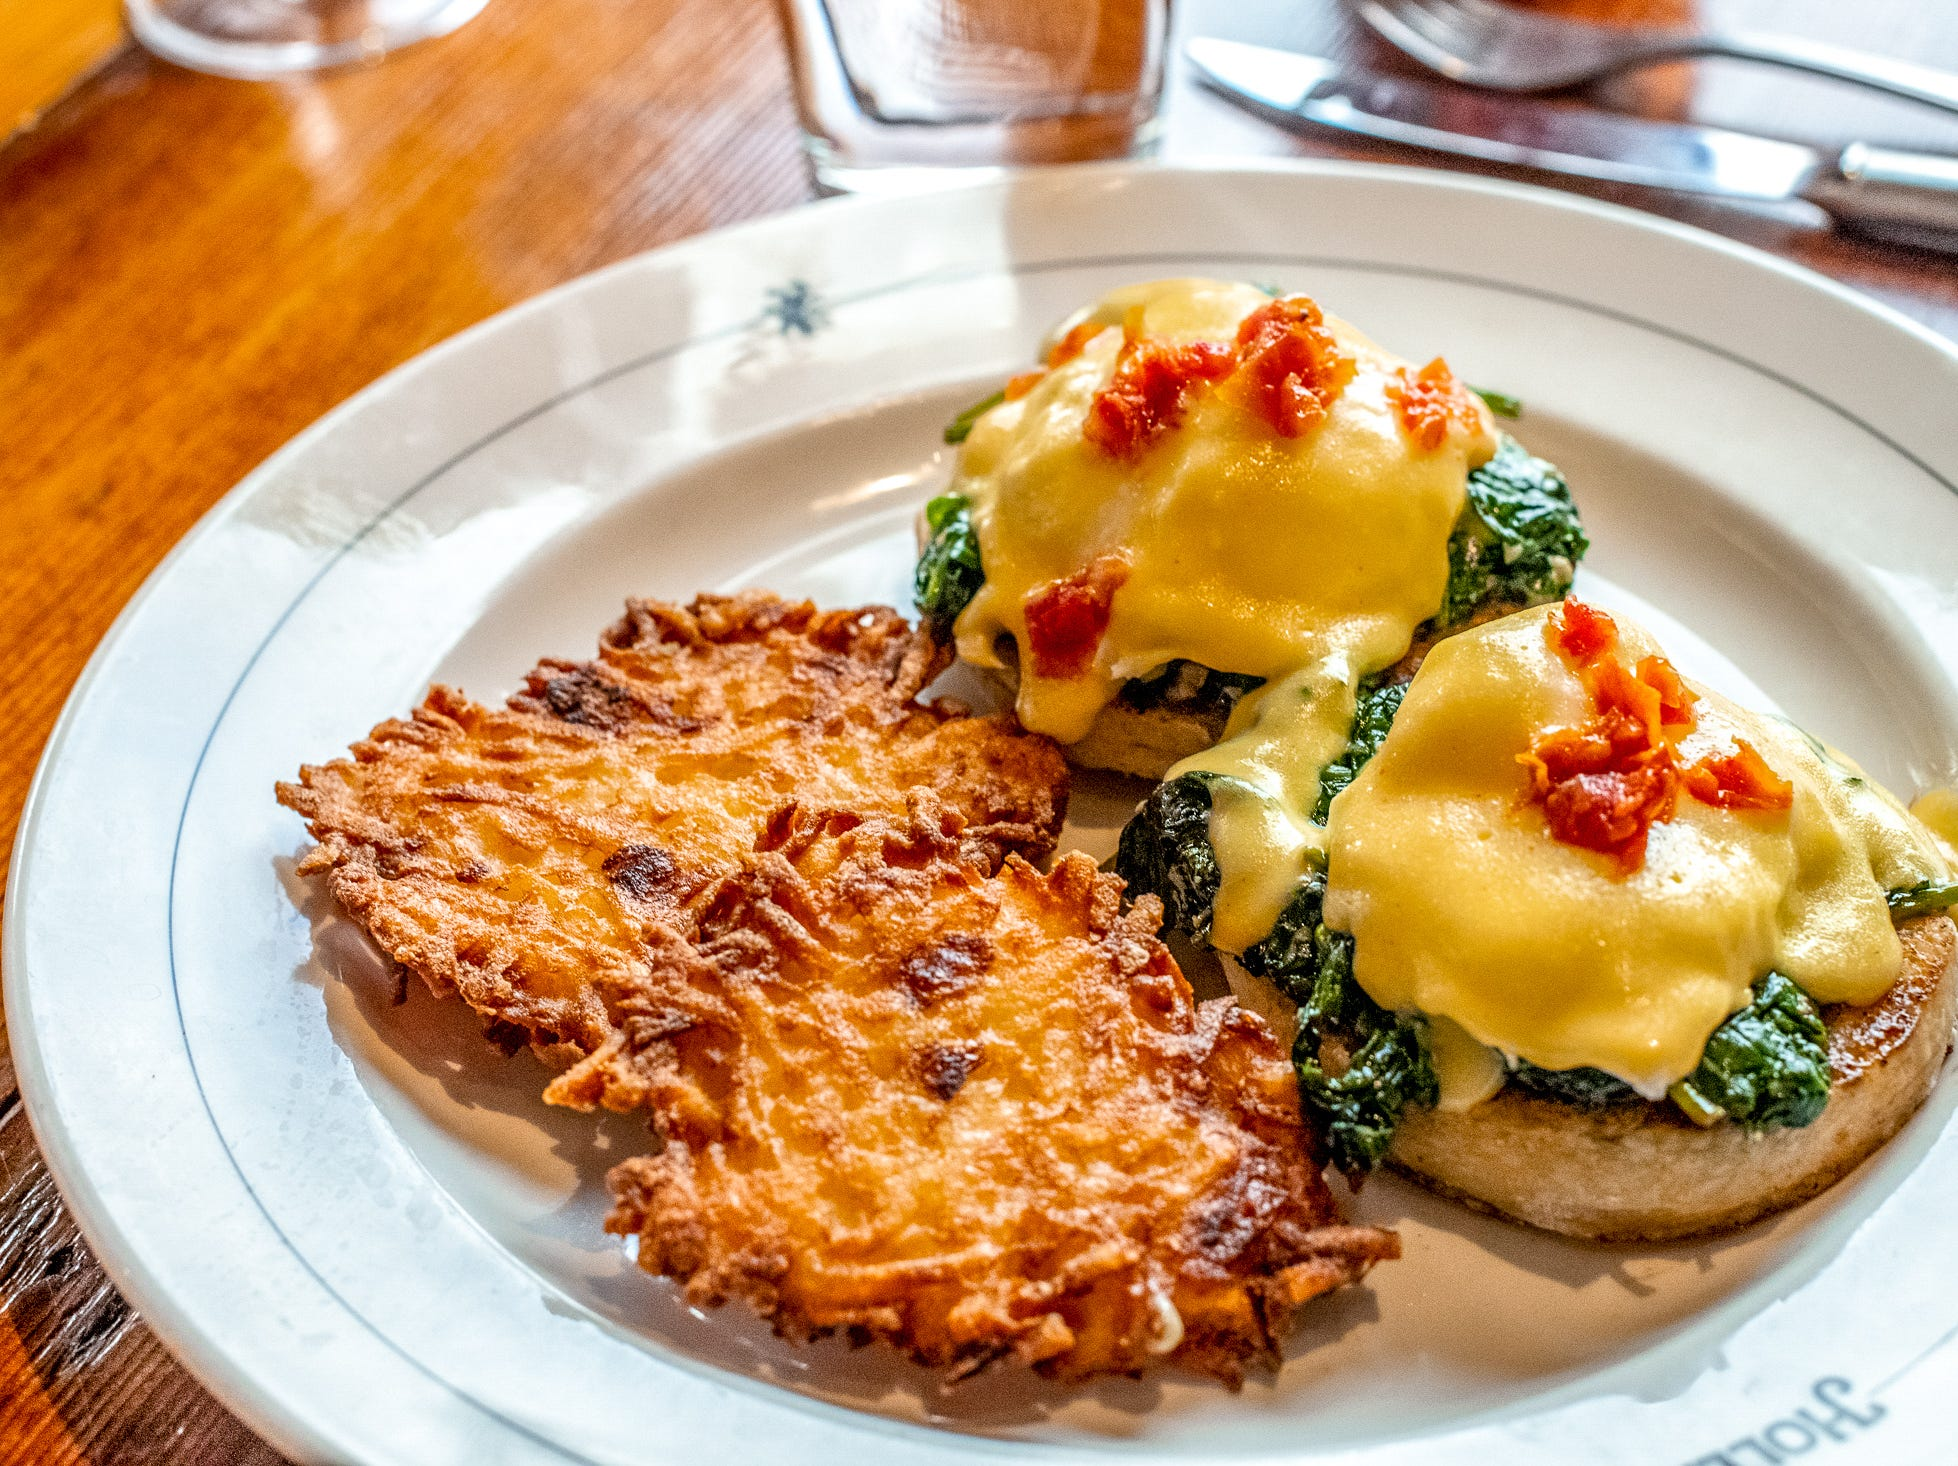 Café Hollander's new brunch menu includes a number of eggs benedicts such as the Florentine Benedict comes with garlic spinach, poached eggs, roasted tomatoes and house hollandaise.